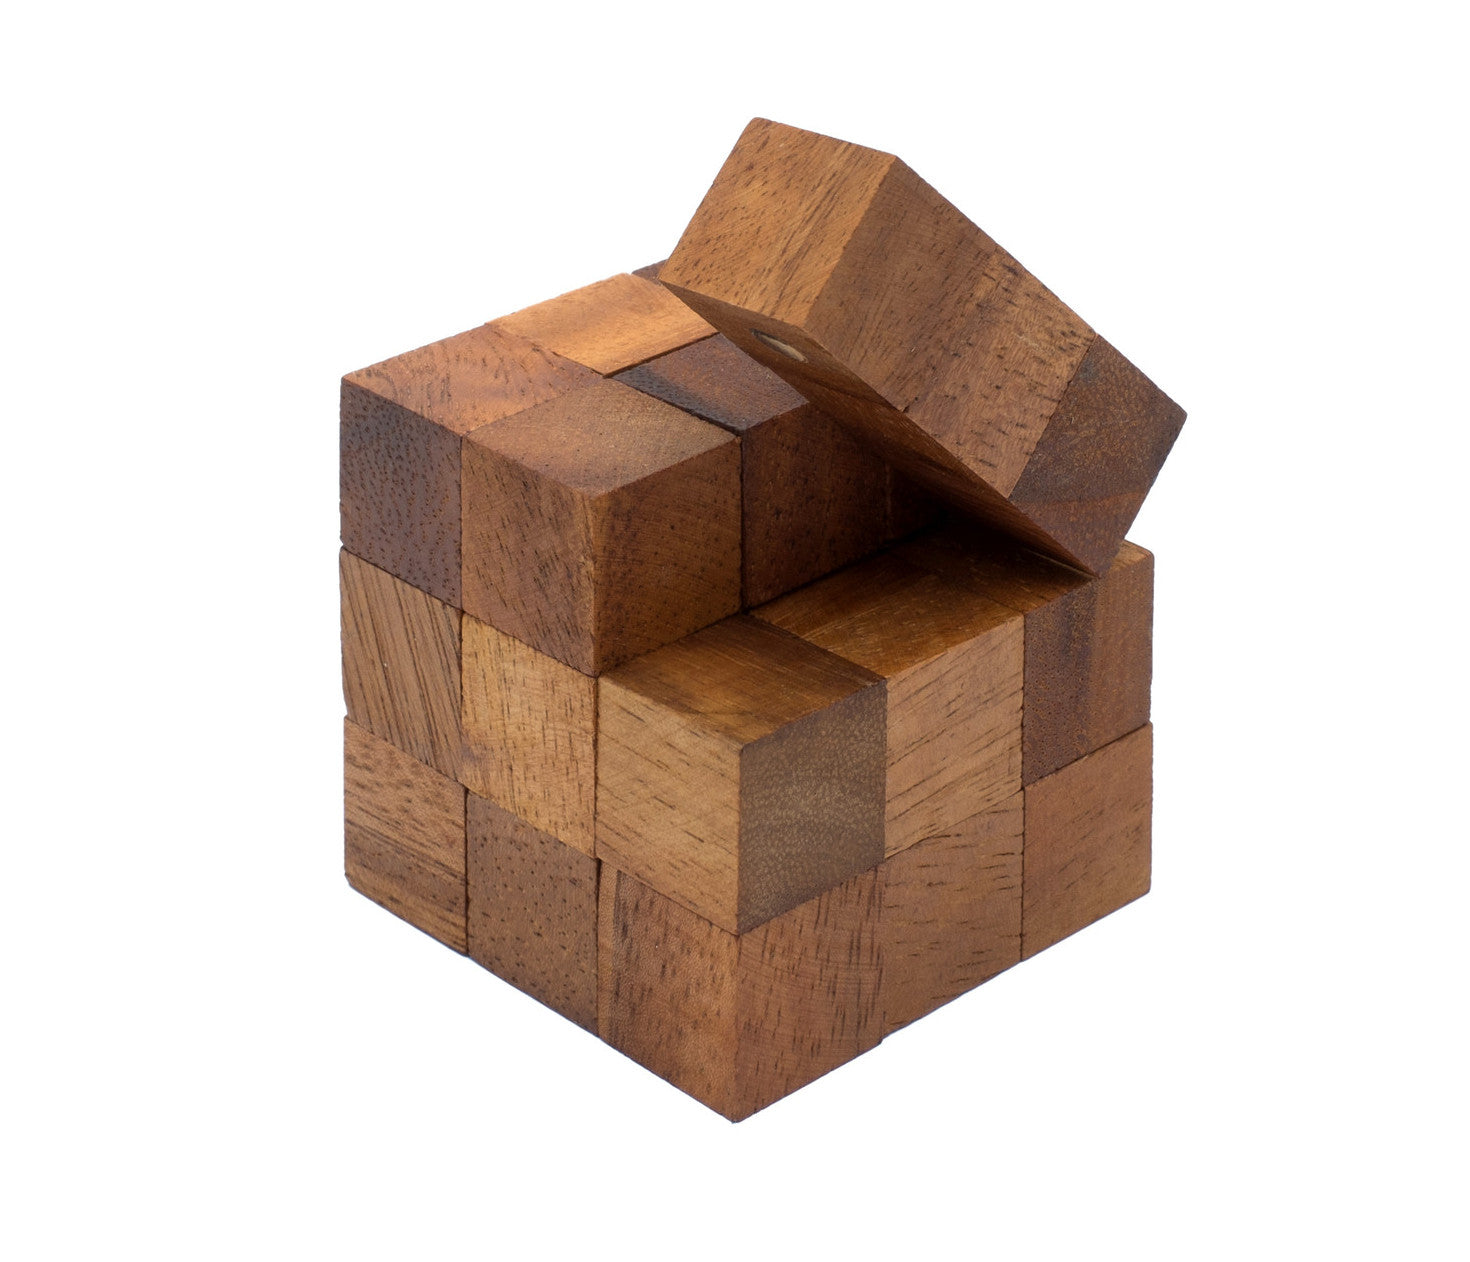 Wooden Puzzles | Wood Brain Teasers | 3D STEM Puzzles